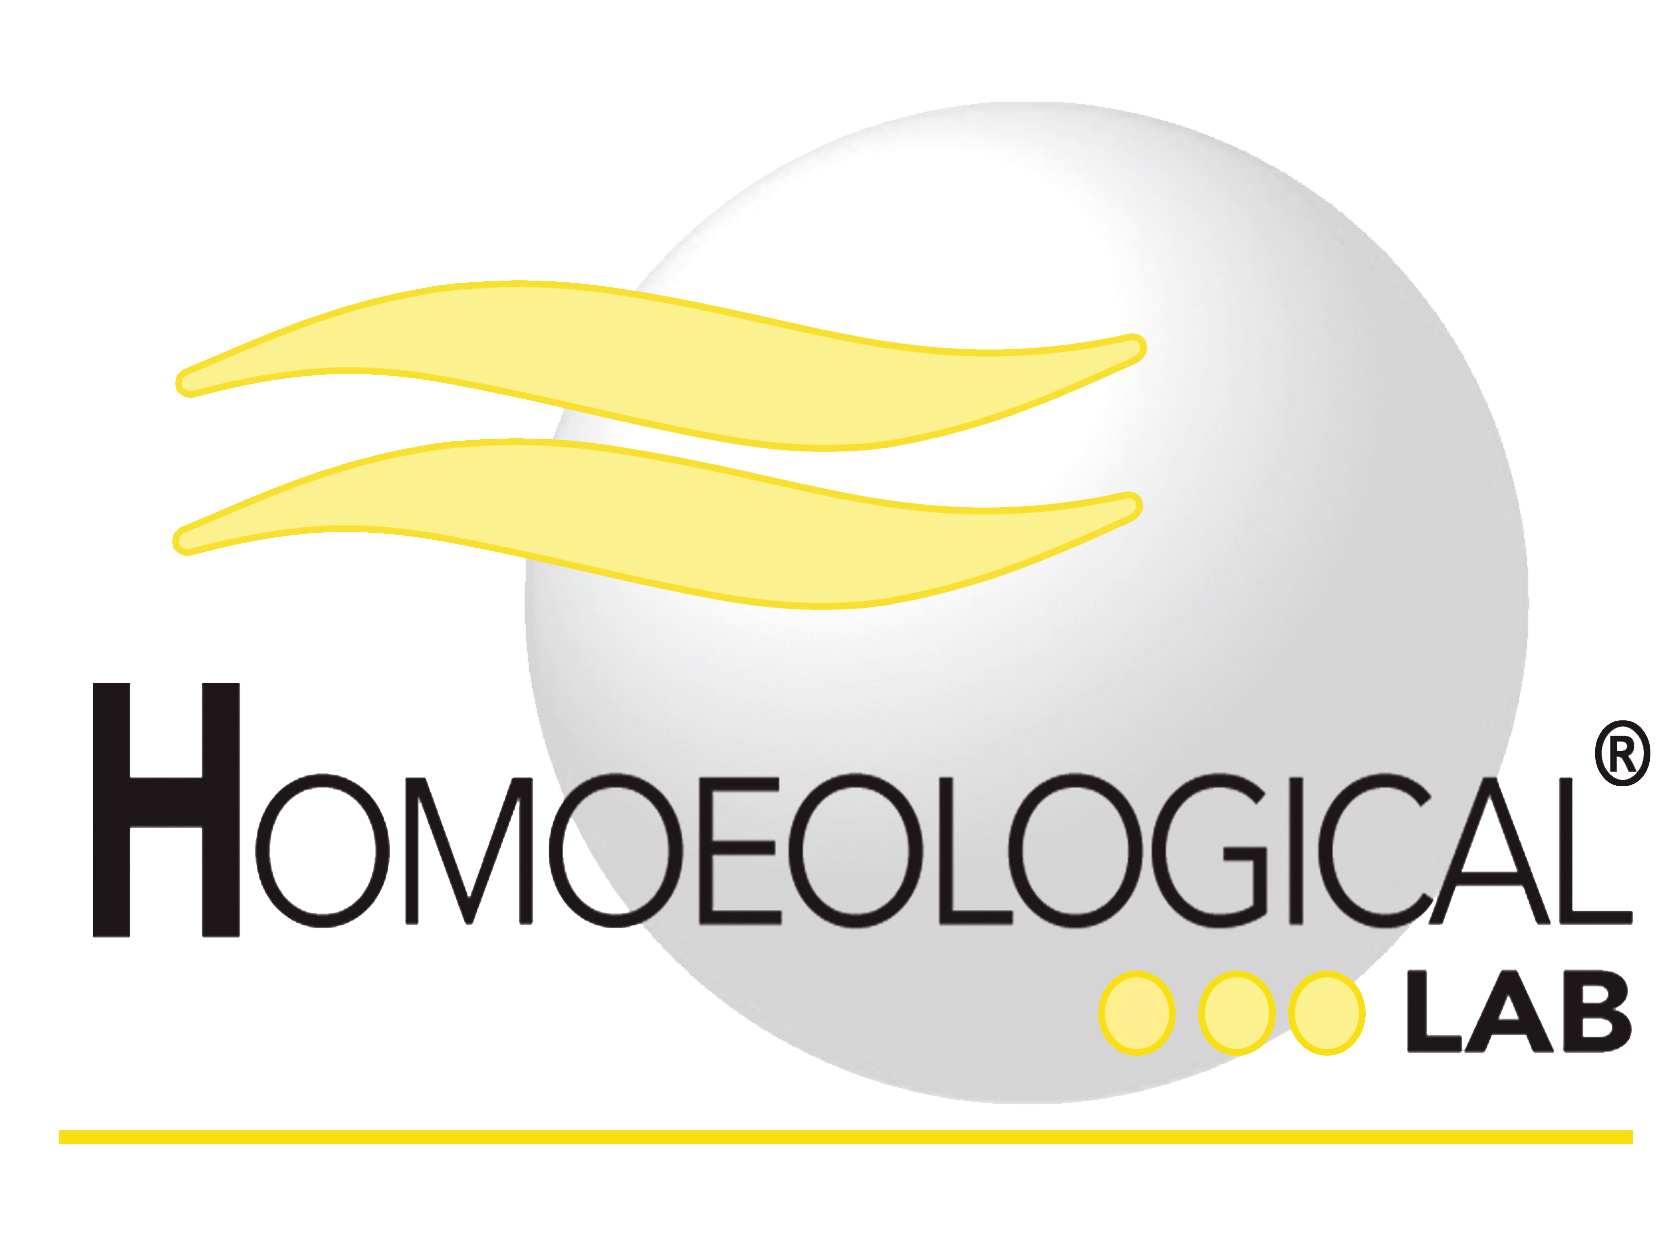 Homoeological Lab GmbH & Co. KG